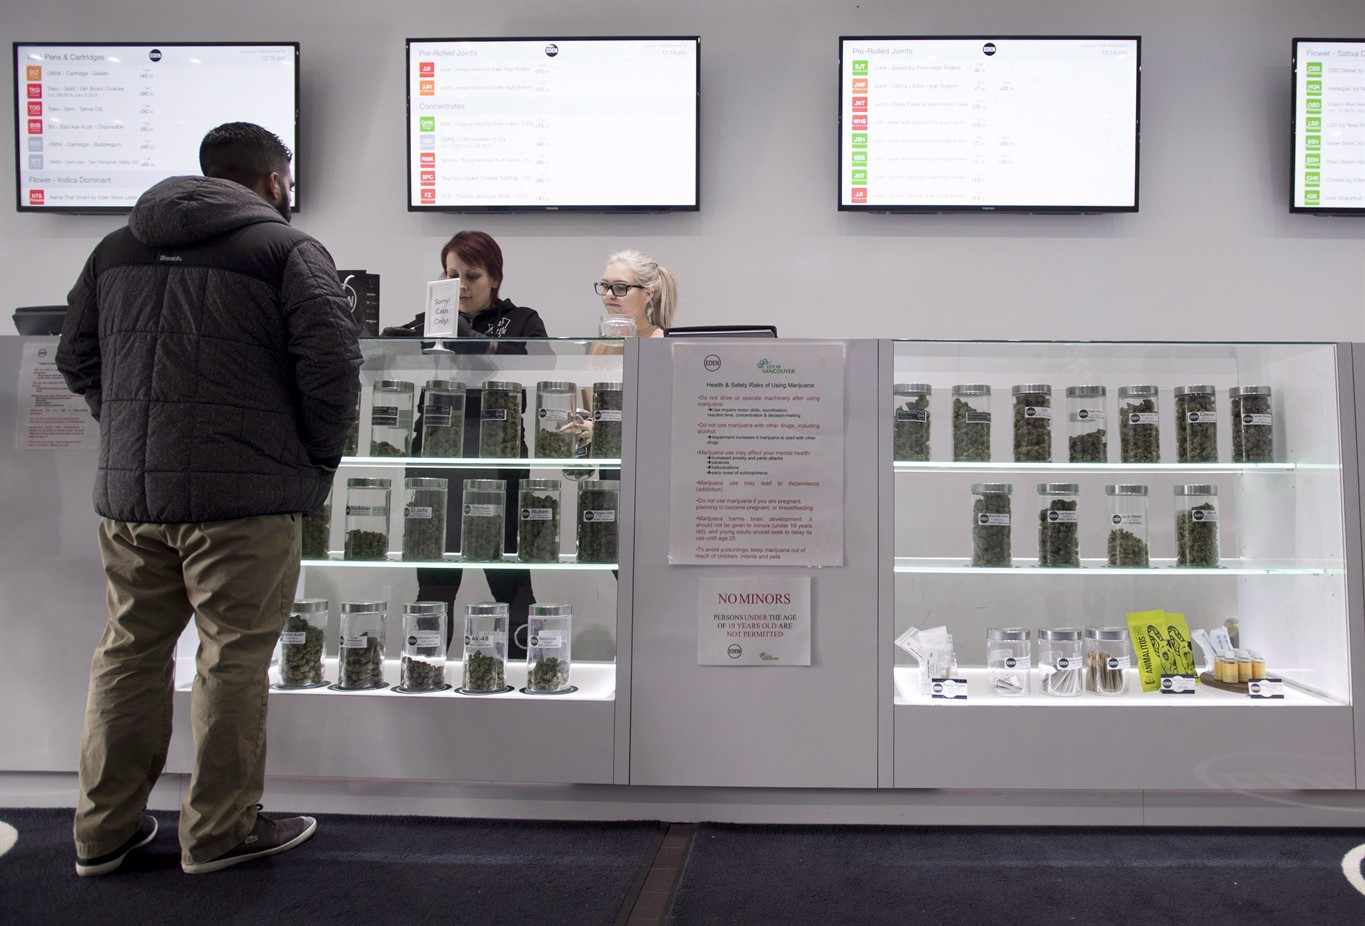 Ontario Announces Regulations for Incoming Cannabis Stores